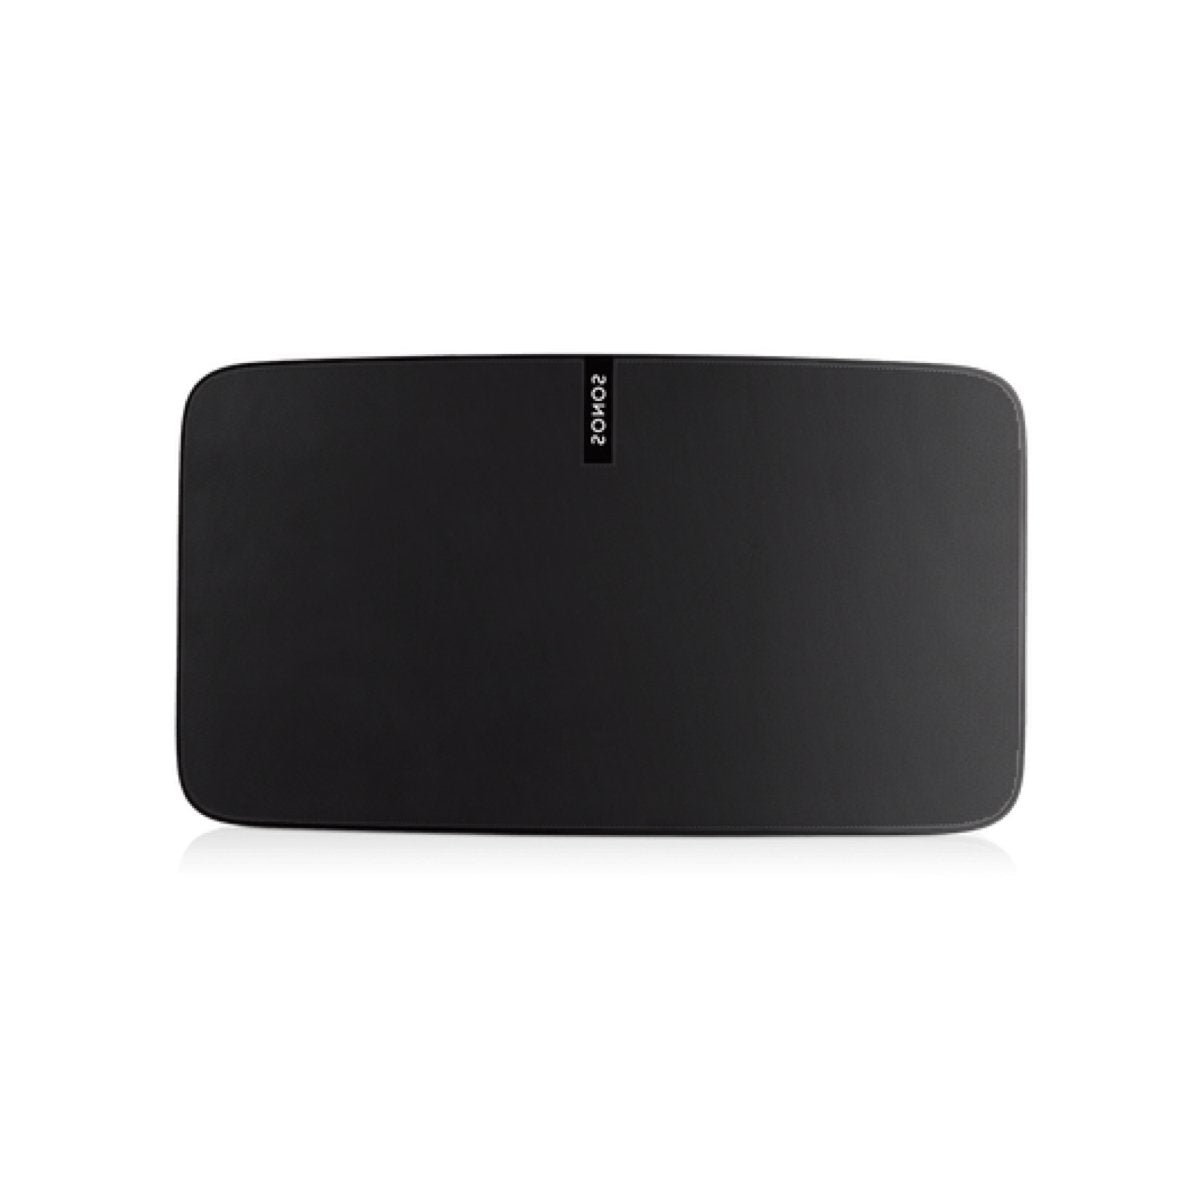 SONOS PLAY:5 (Black) Wireless Speaker - AVStore.in